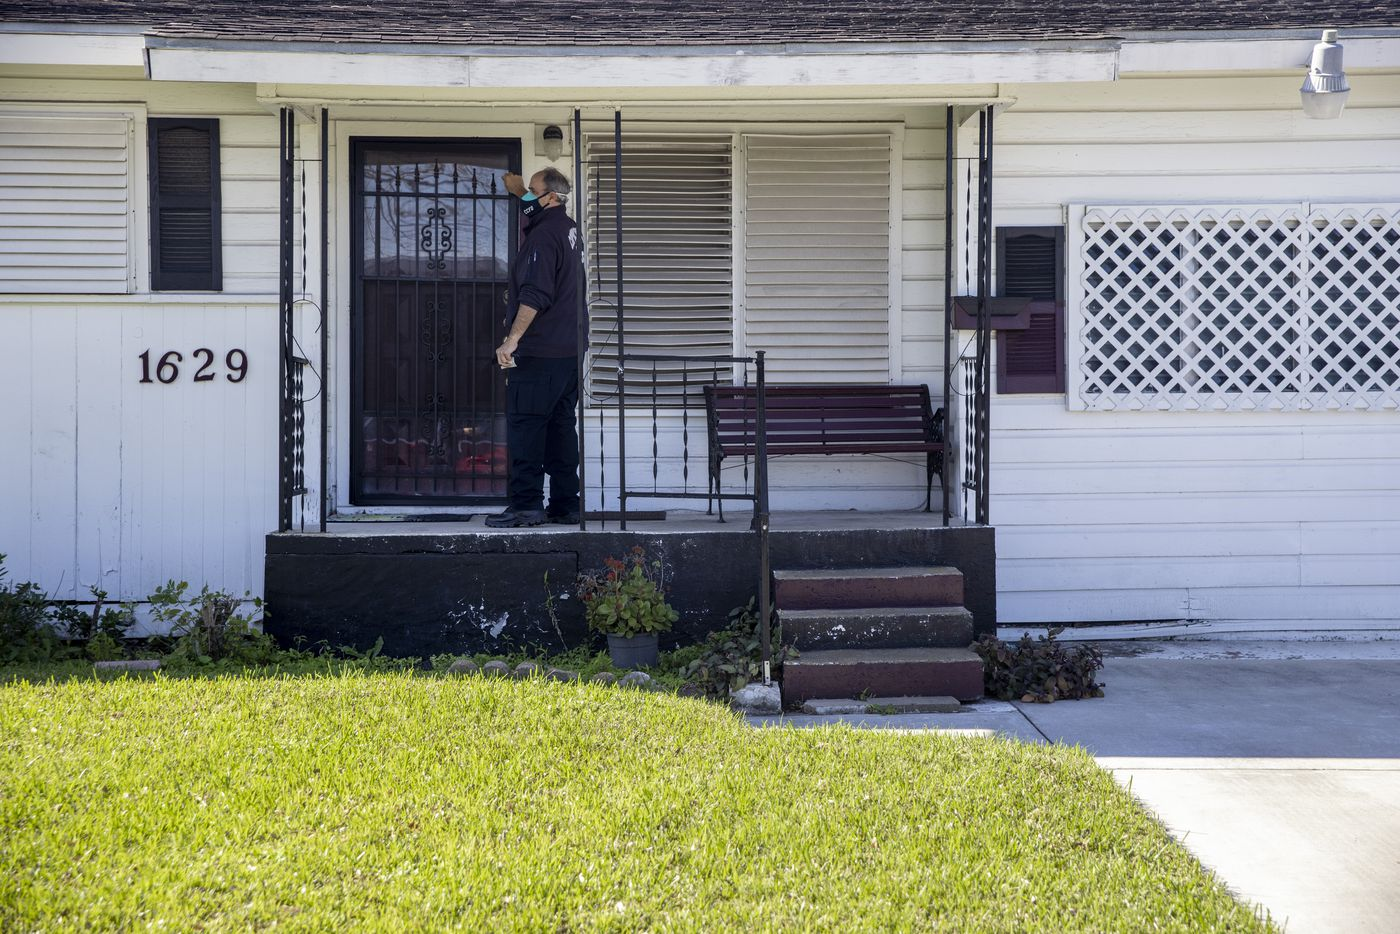 Firefighter II/EMT Steve Bowers knocks on a home of a Meals for Wheels recipient in Corpus Christi, Texas, on Monday, Feb. 1, 2021. The Corpus Christi Fire Department has spearheaded a program for administering COVID-19 vaccines to vulnerable elderly populations through utilizing existing rosters kept by the city's Meals on Wheels initiative and those of other civil senior service programs. (Lynda M. González/The Dallas Morning News)